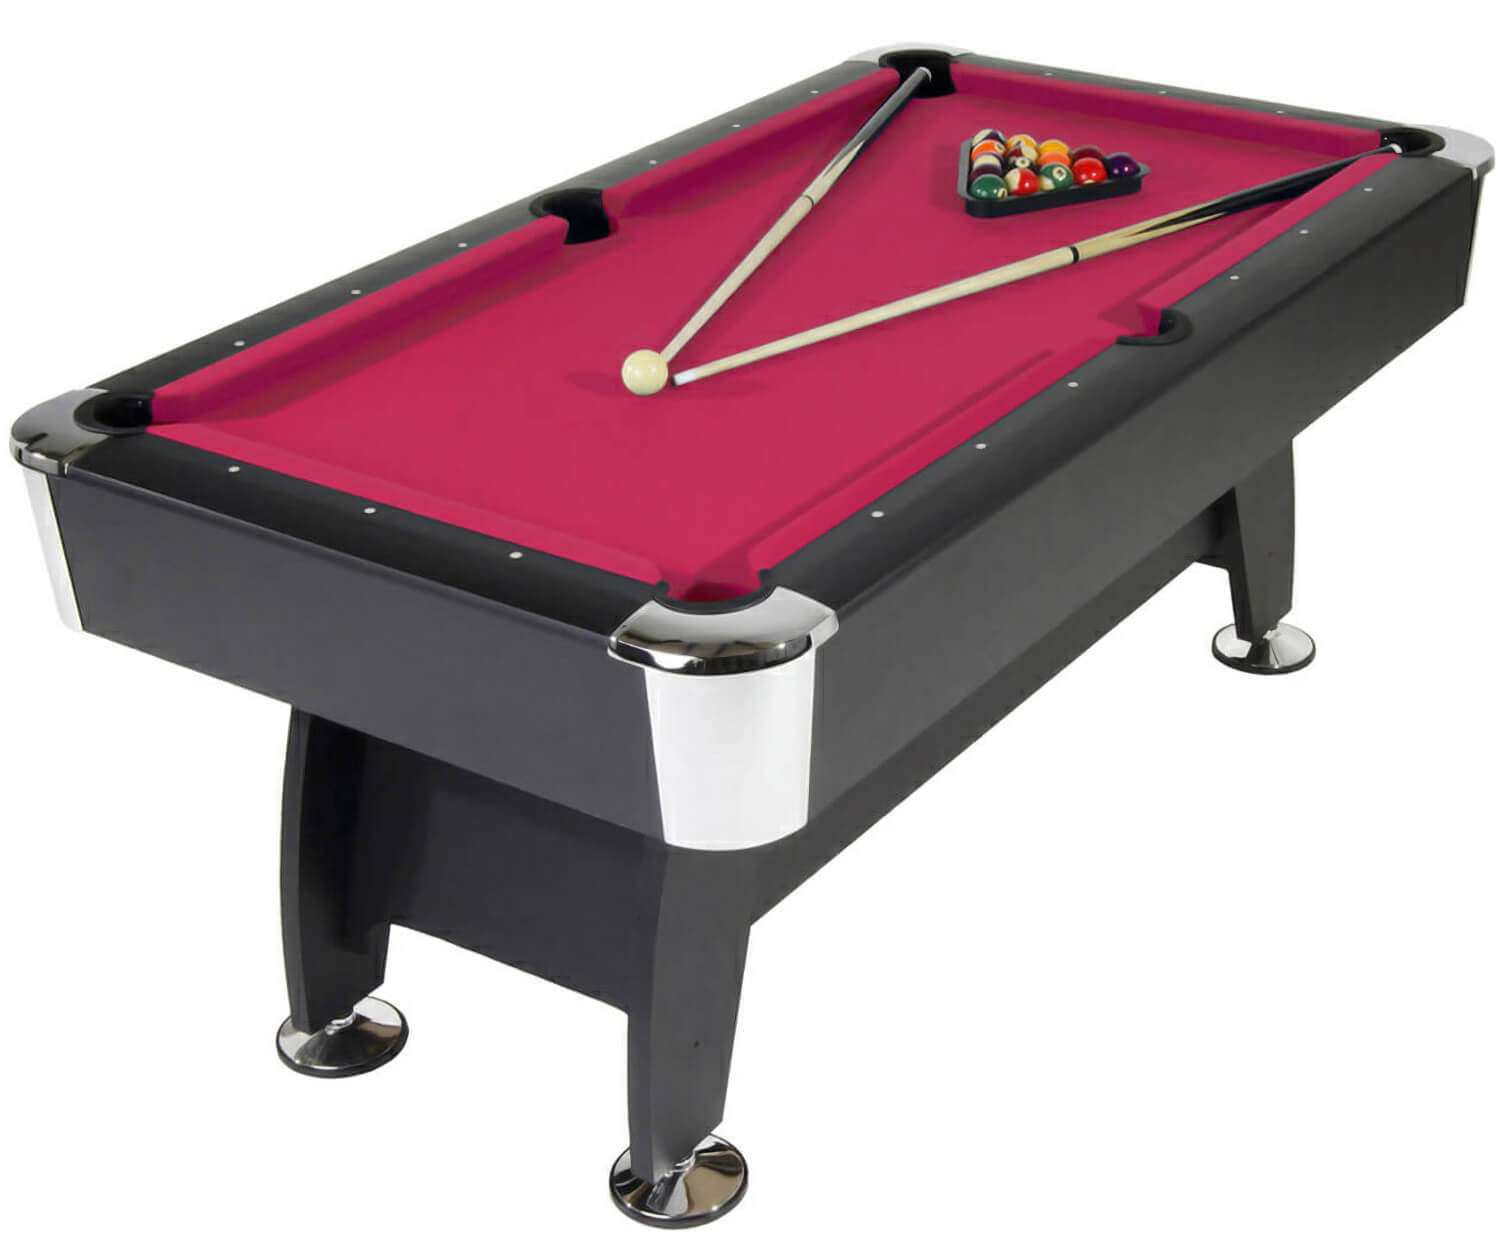 Strikeworth Pro American Deluxe 6ft Pool Table : Liberty Games